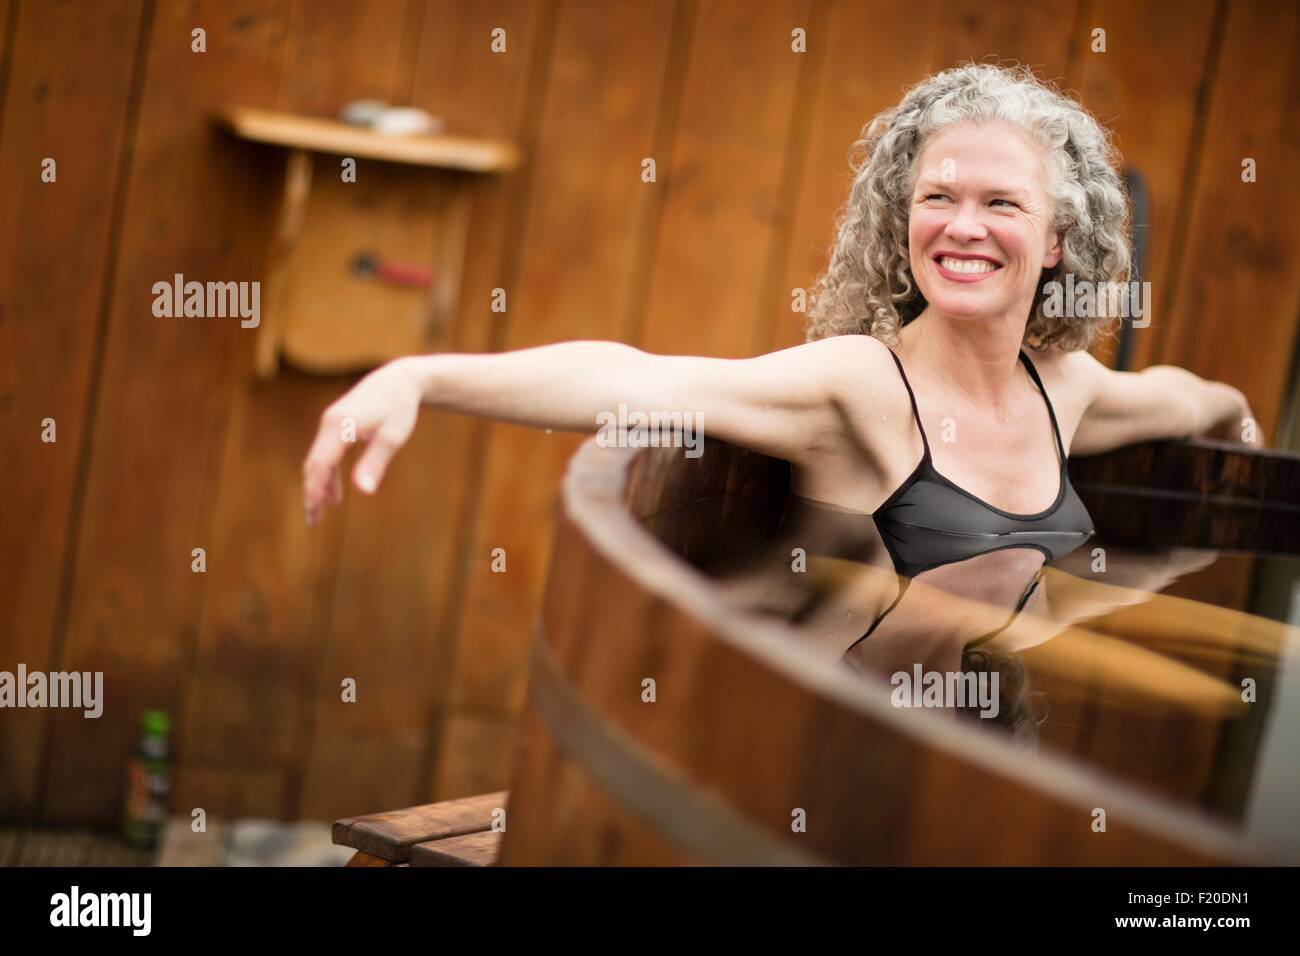 Smiling mature woman in hot tub at eco retreat - Stock Image